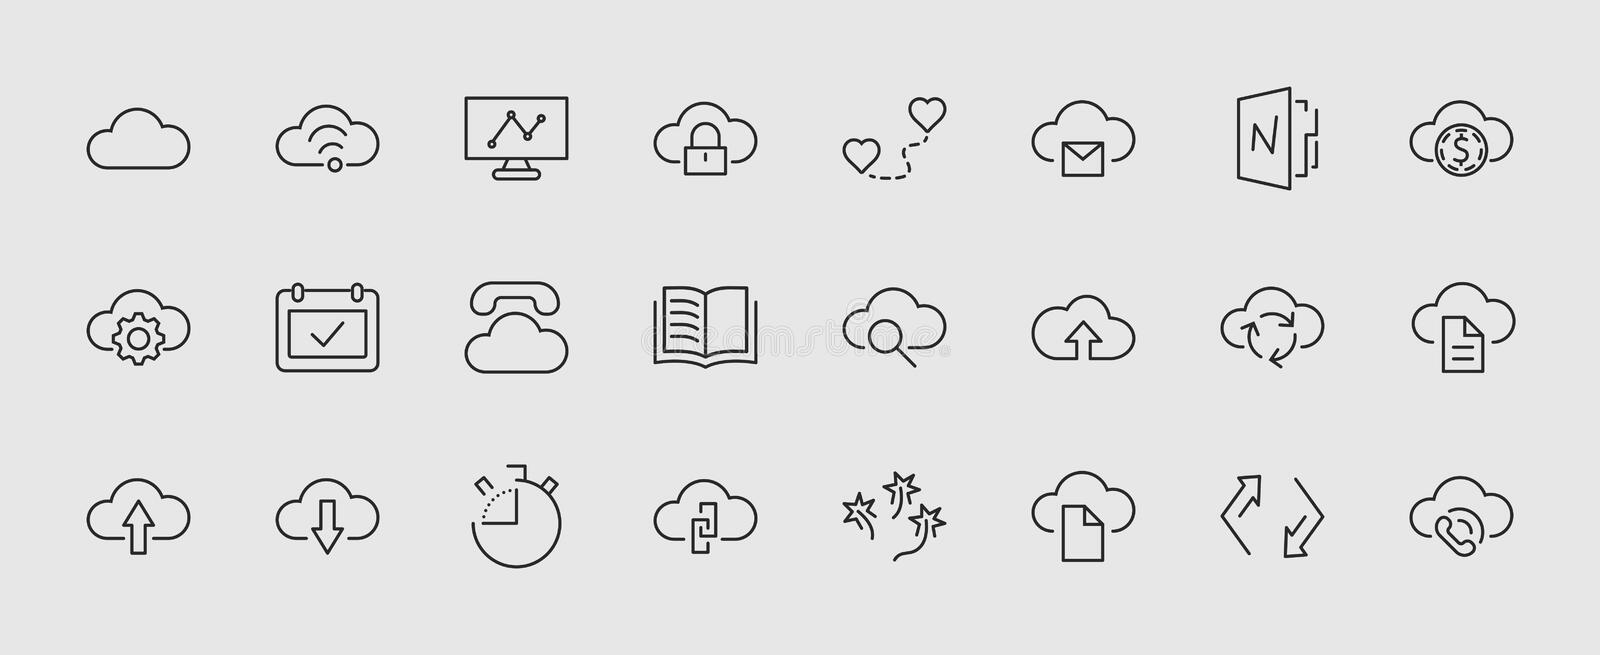 Set of cloud vector line icon. It contains symbols to upload, download, link and more. Editable move. 32x32 pixels. royalty free illustration